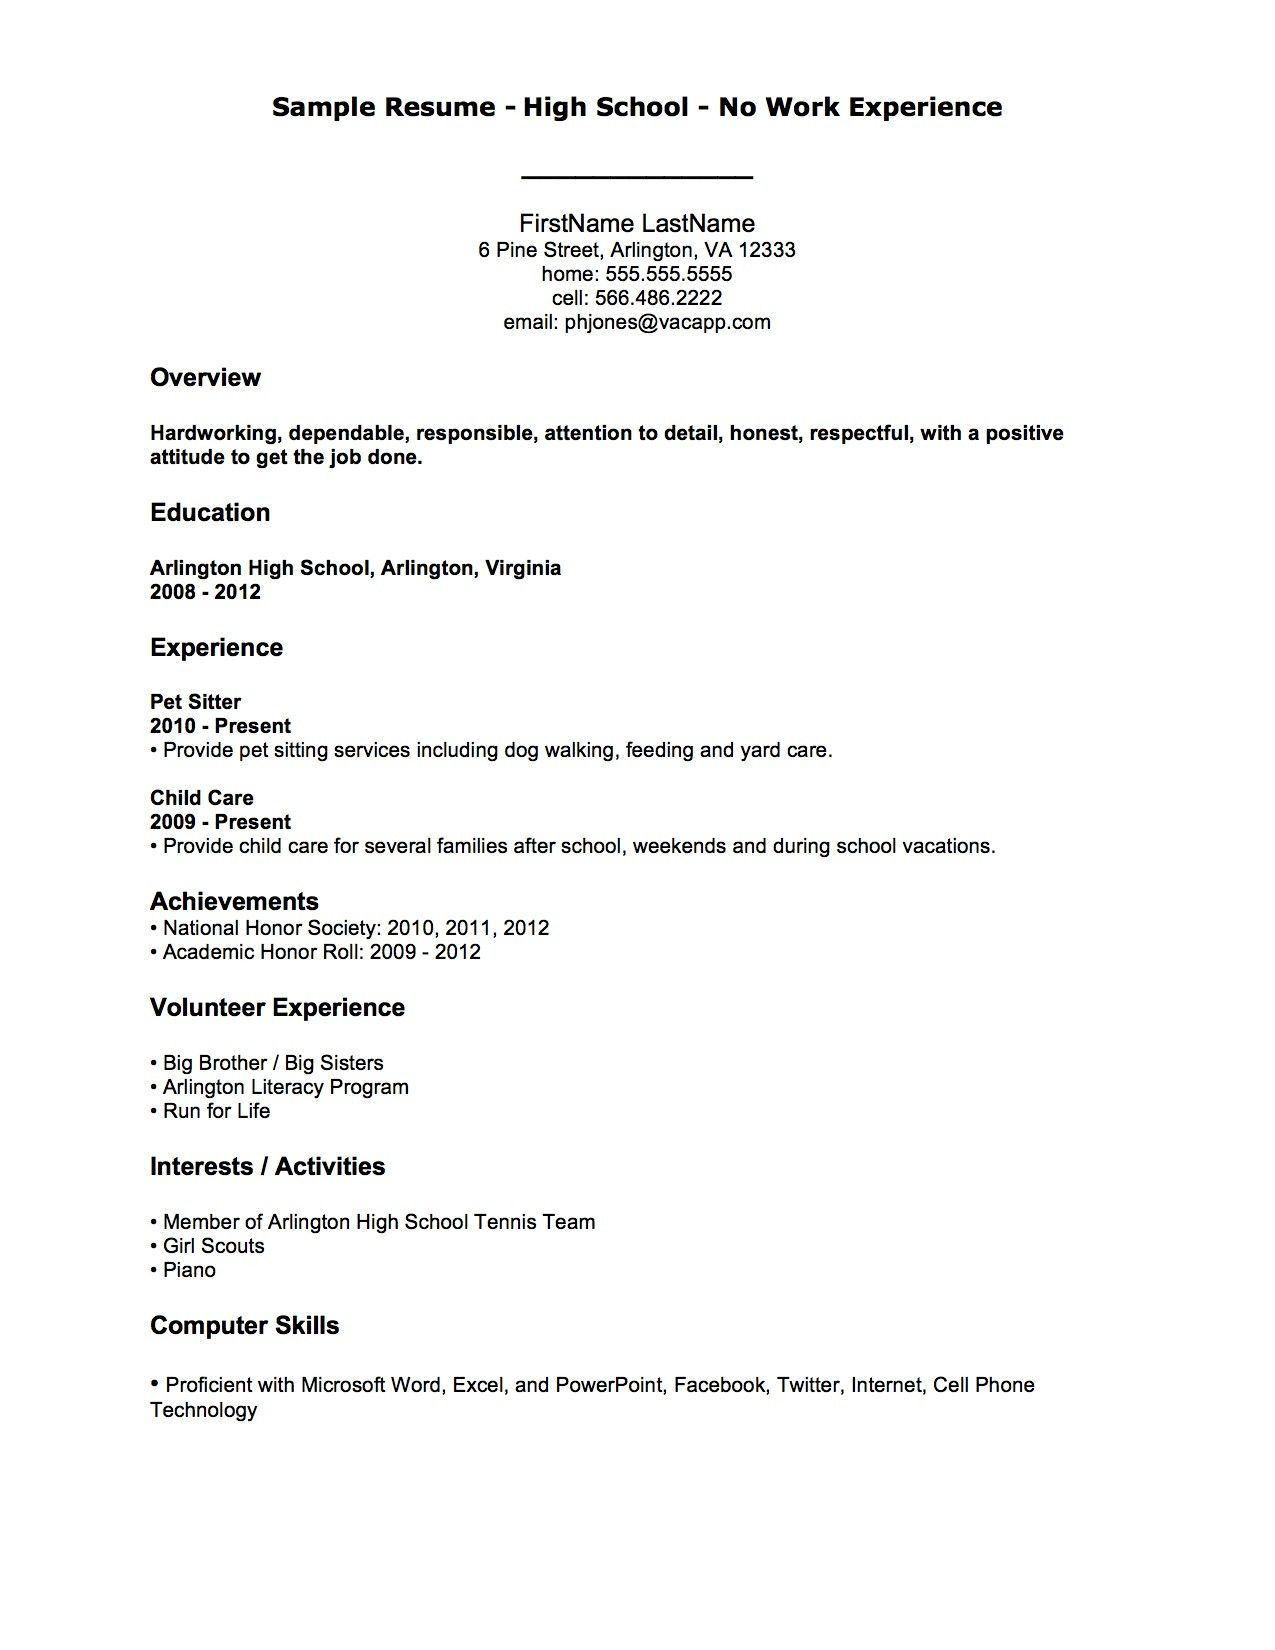 How To Format References On A Resume How To Write A Resume For A Job With No Experience  Google Search